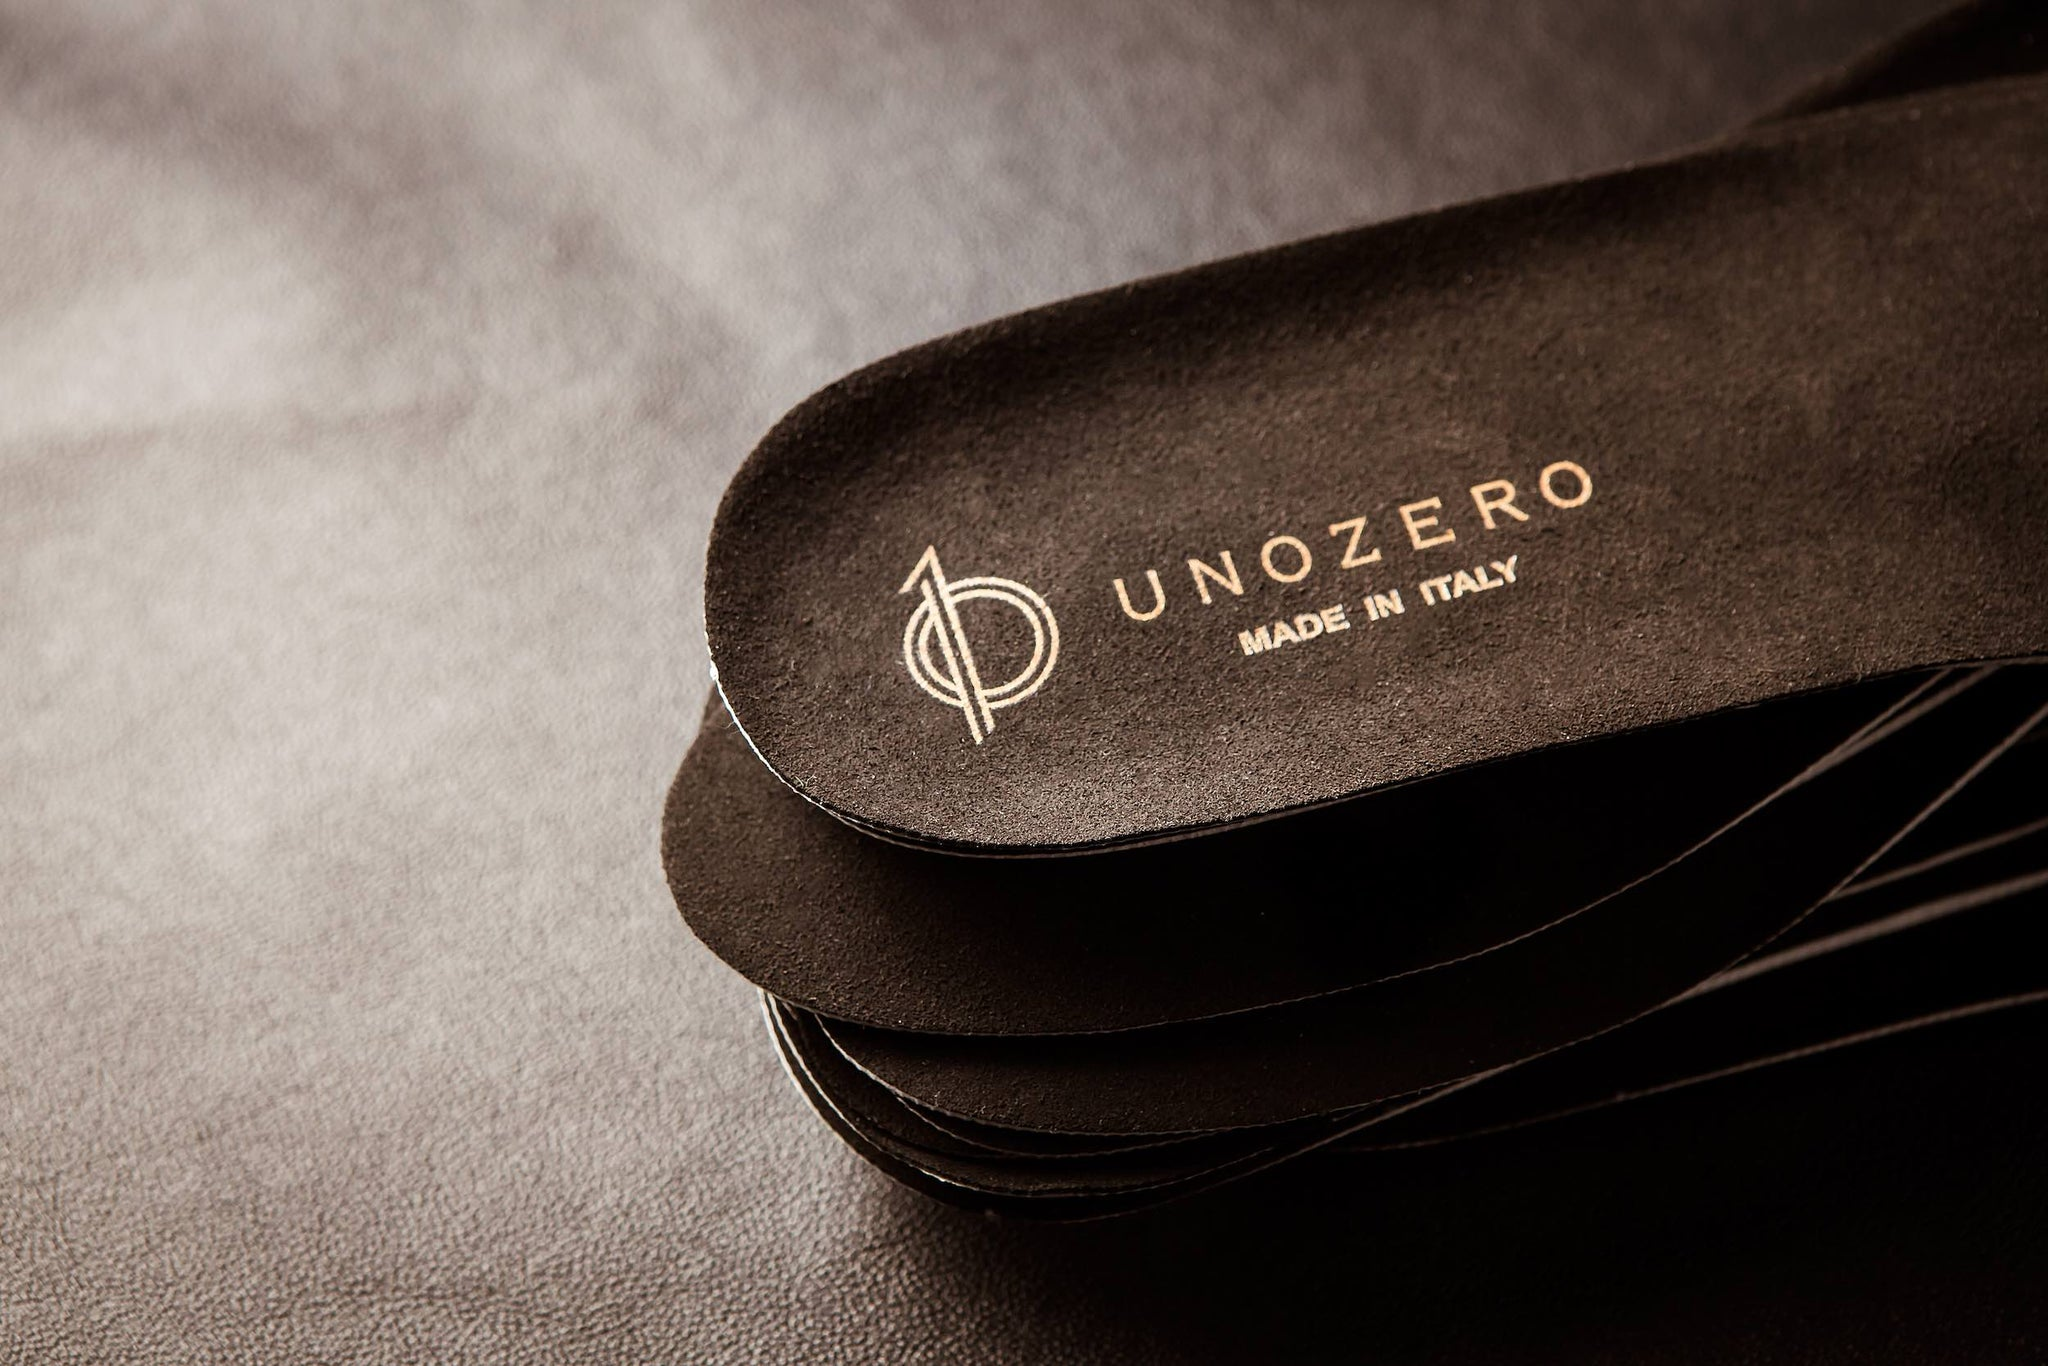 Shoe sole with UNOZERO logo